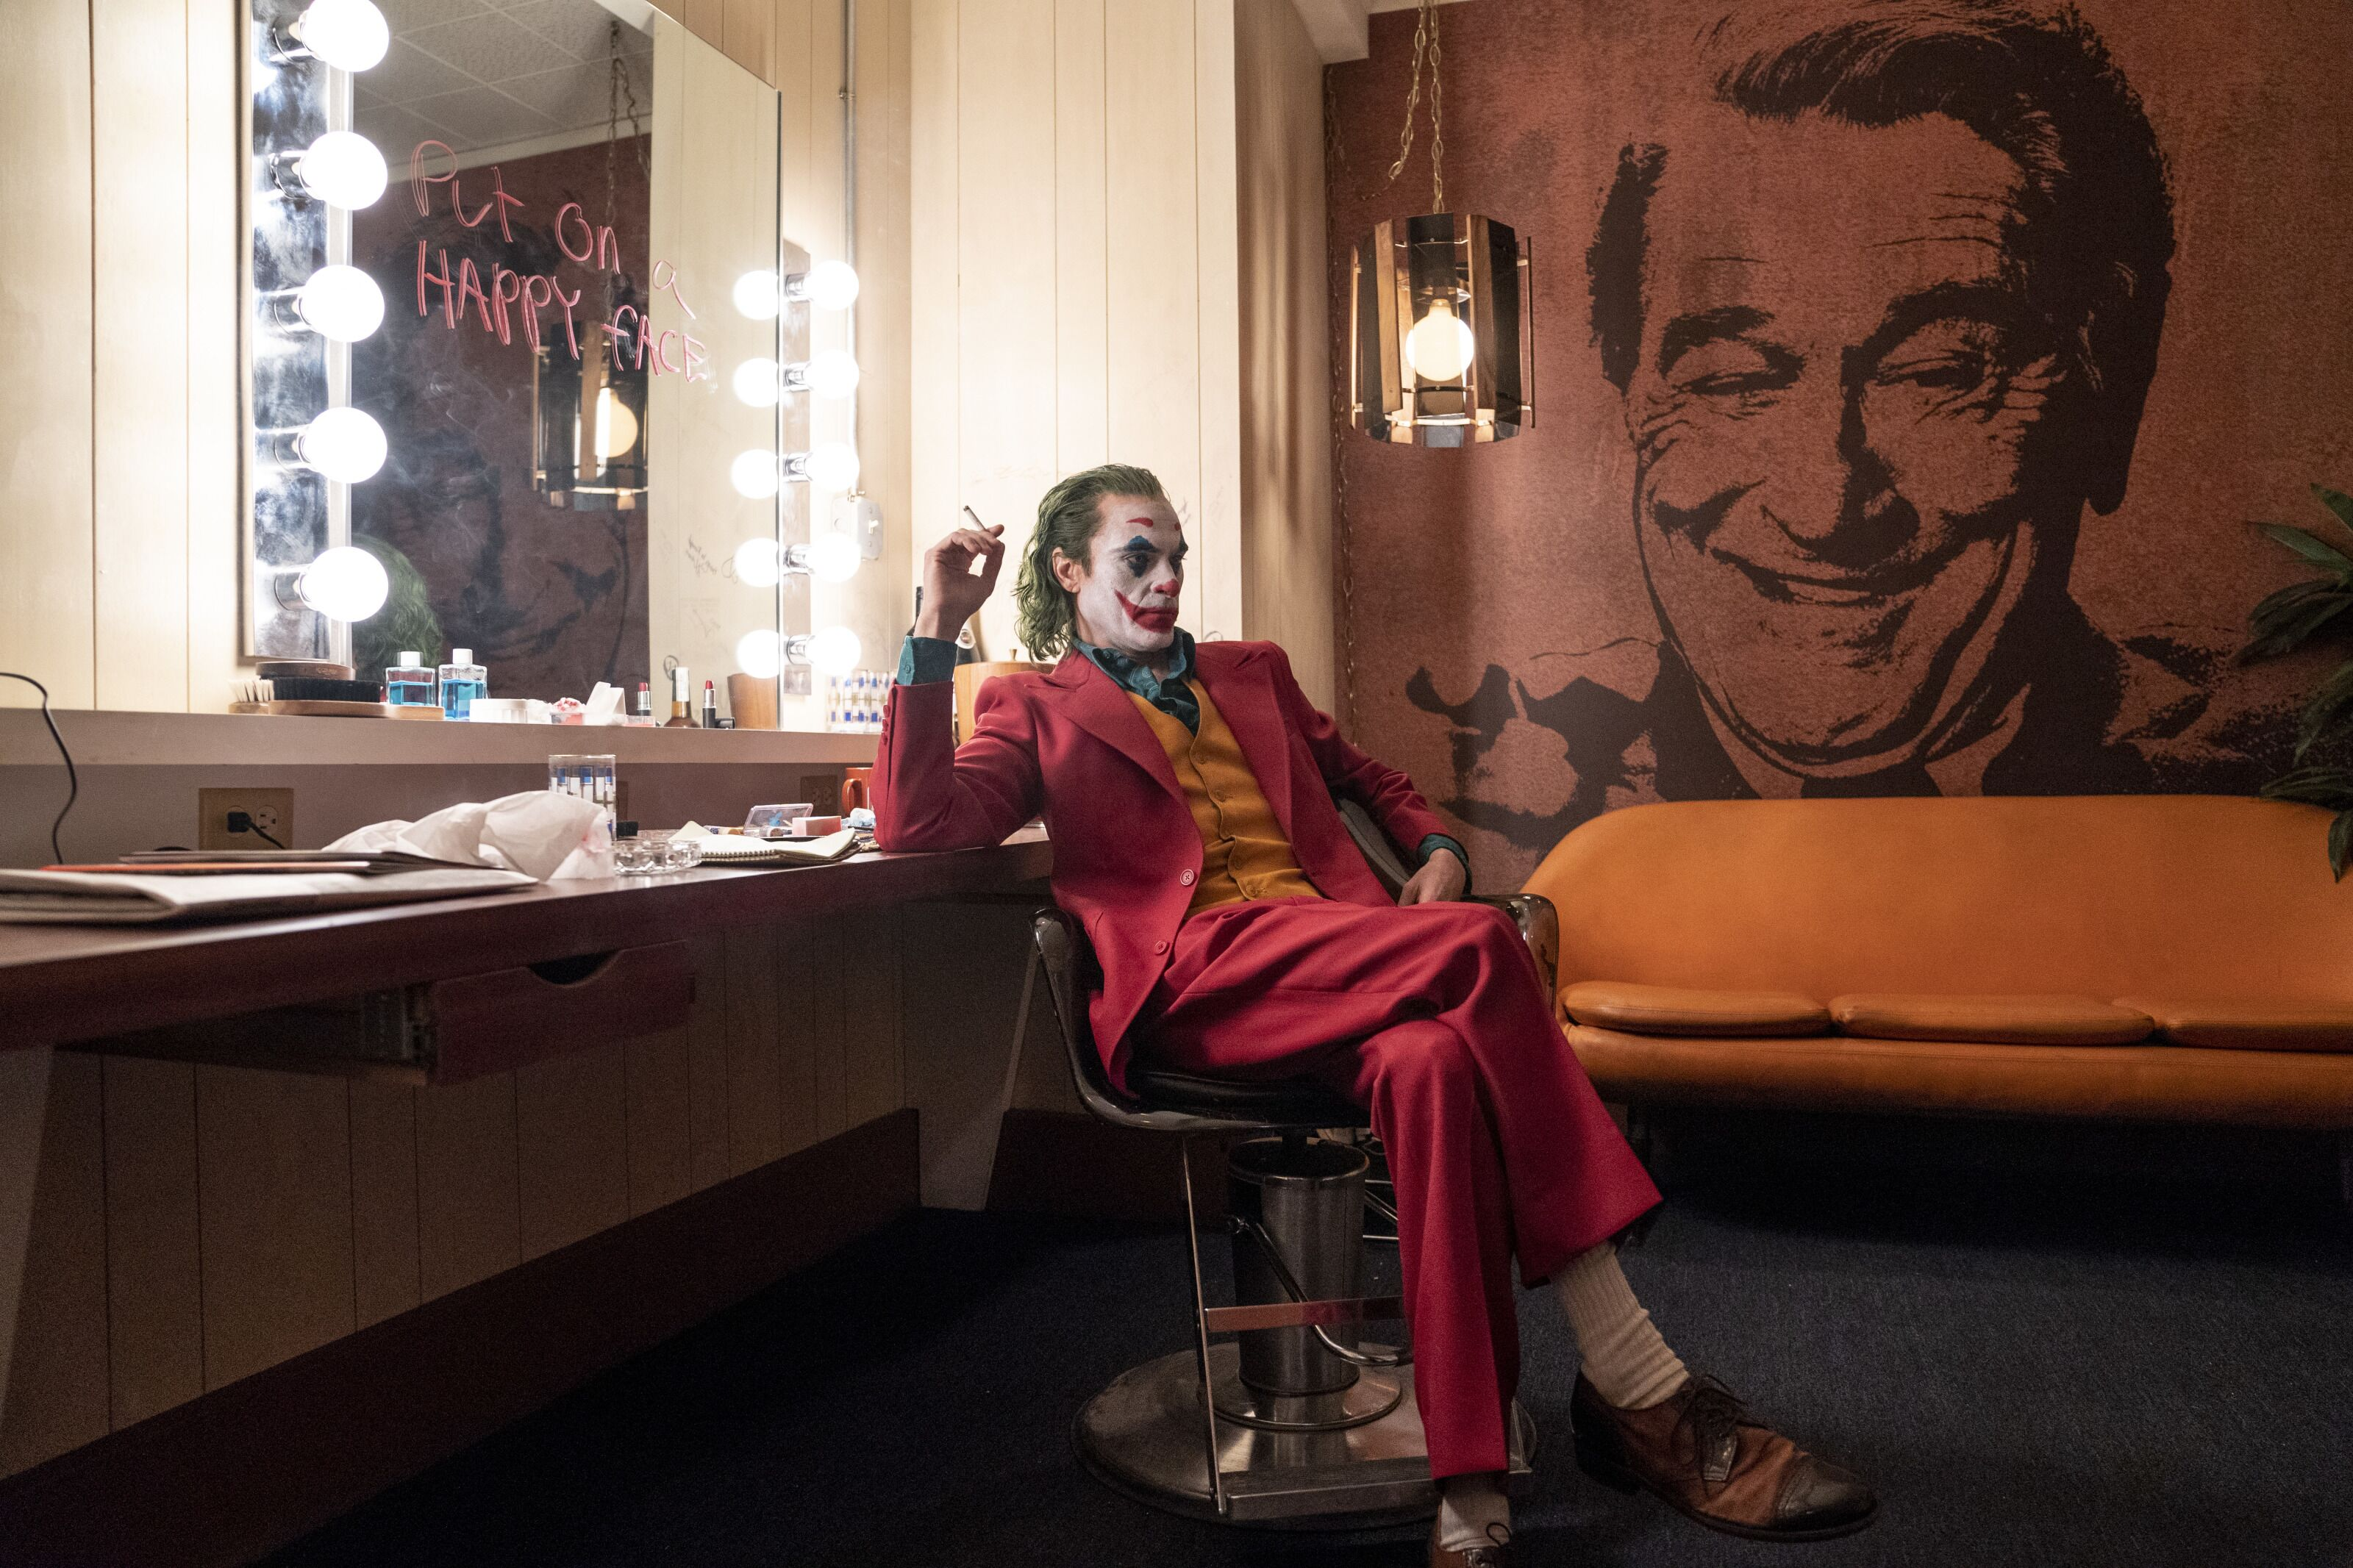 The top 10 movies at the box office: How many records did Joker break?